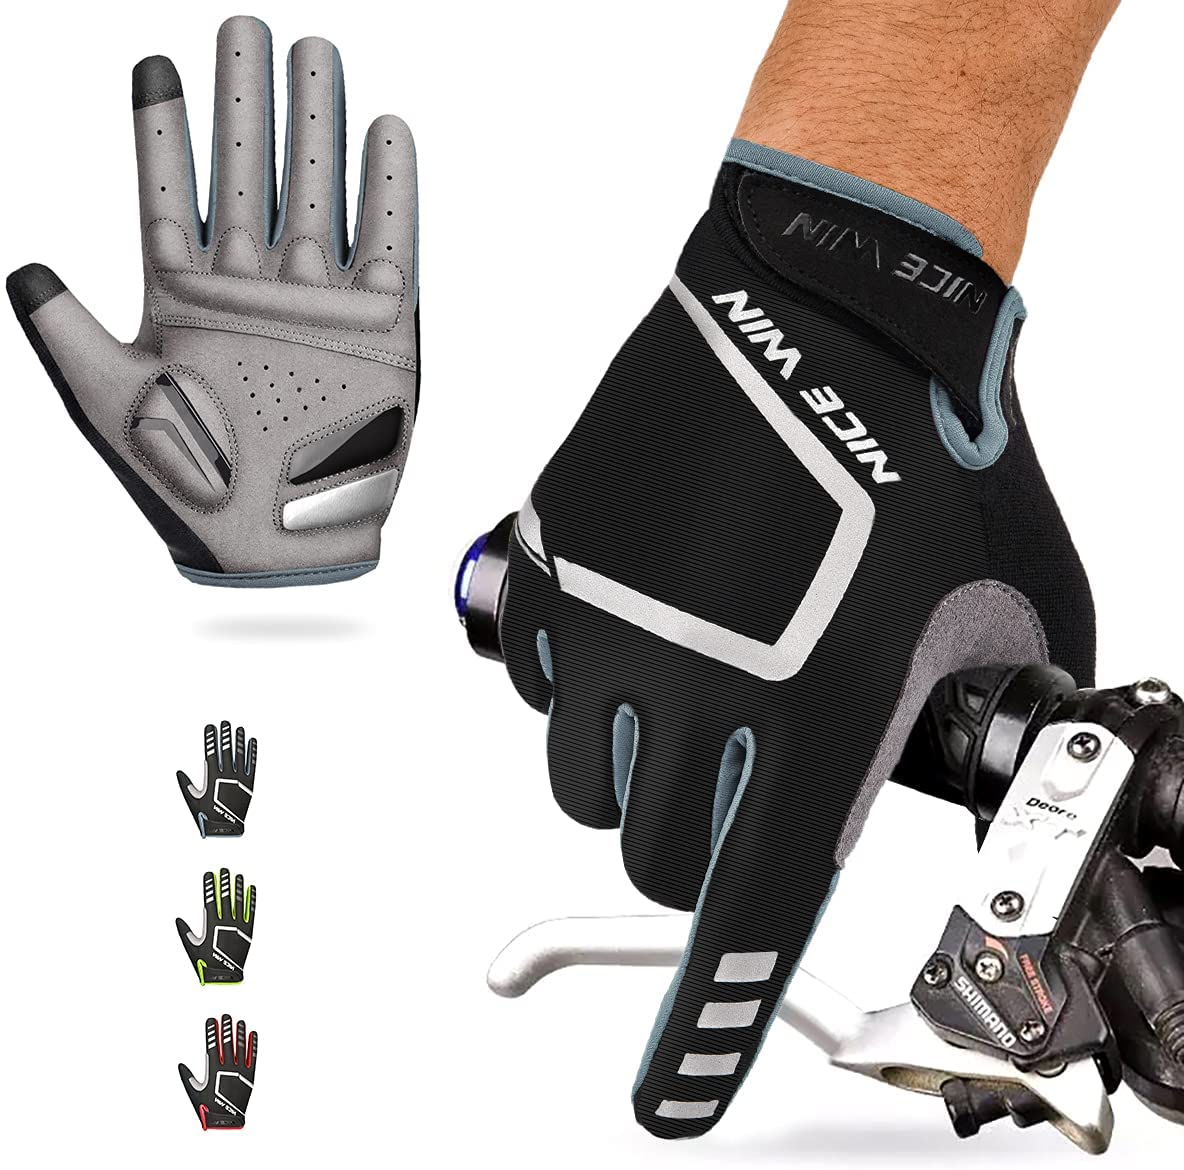 NICEWIN Virginia At the price of surprise Beach Mall Cycling Gloves Motorcycle Bike Me Road Bicycle Mountain-